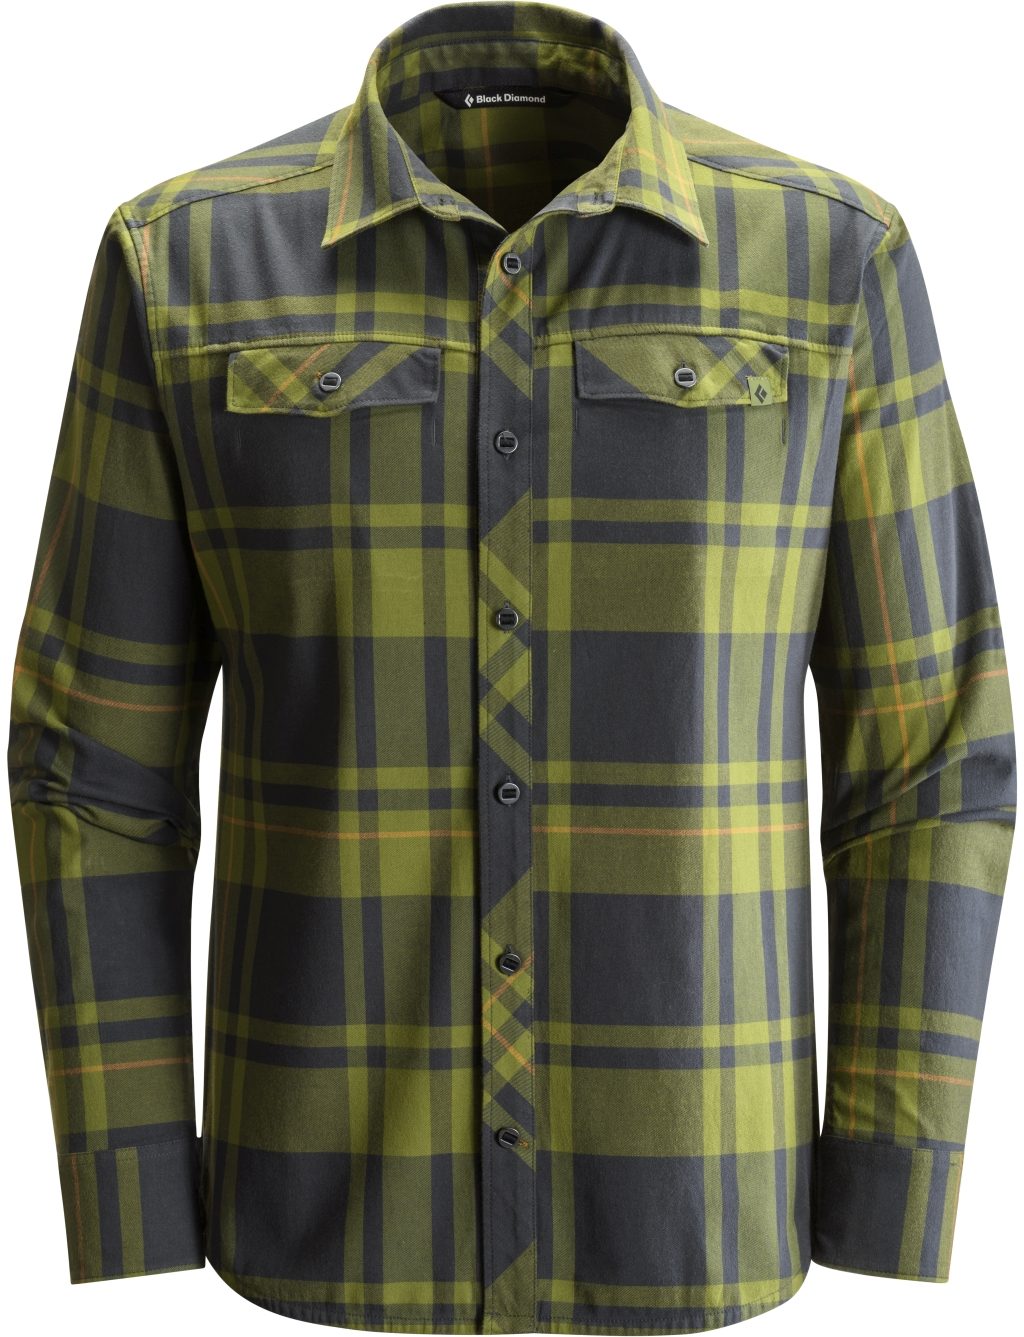 Black Diamond Long-Sleeve Stretch Technician Shirt Cargo Black Plaid-30